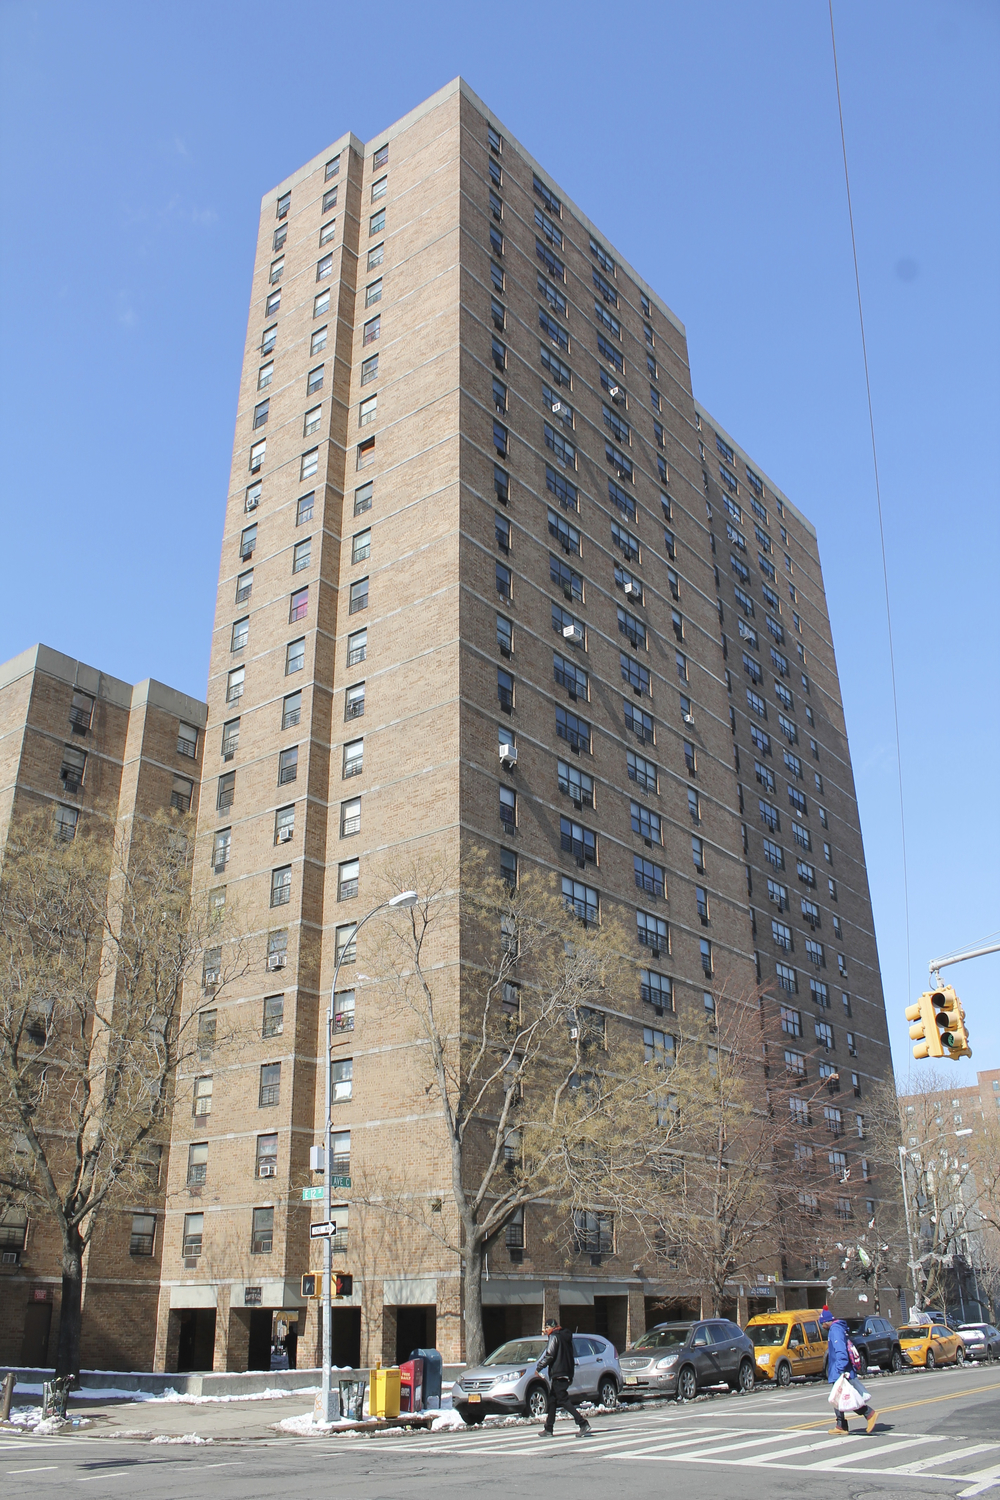 205 Avenue C, as seen on March 2, 2015.  Source :  Louis Flores